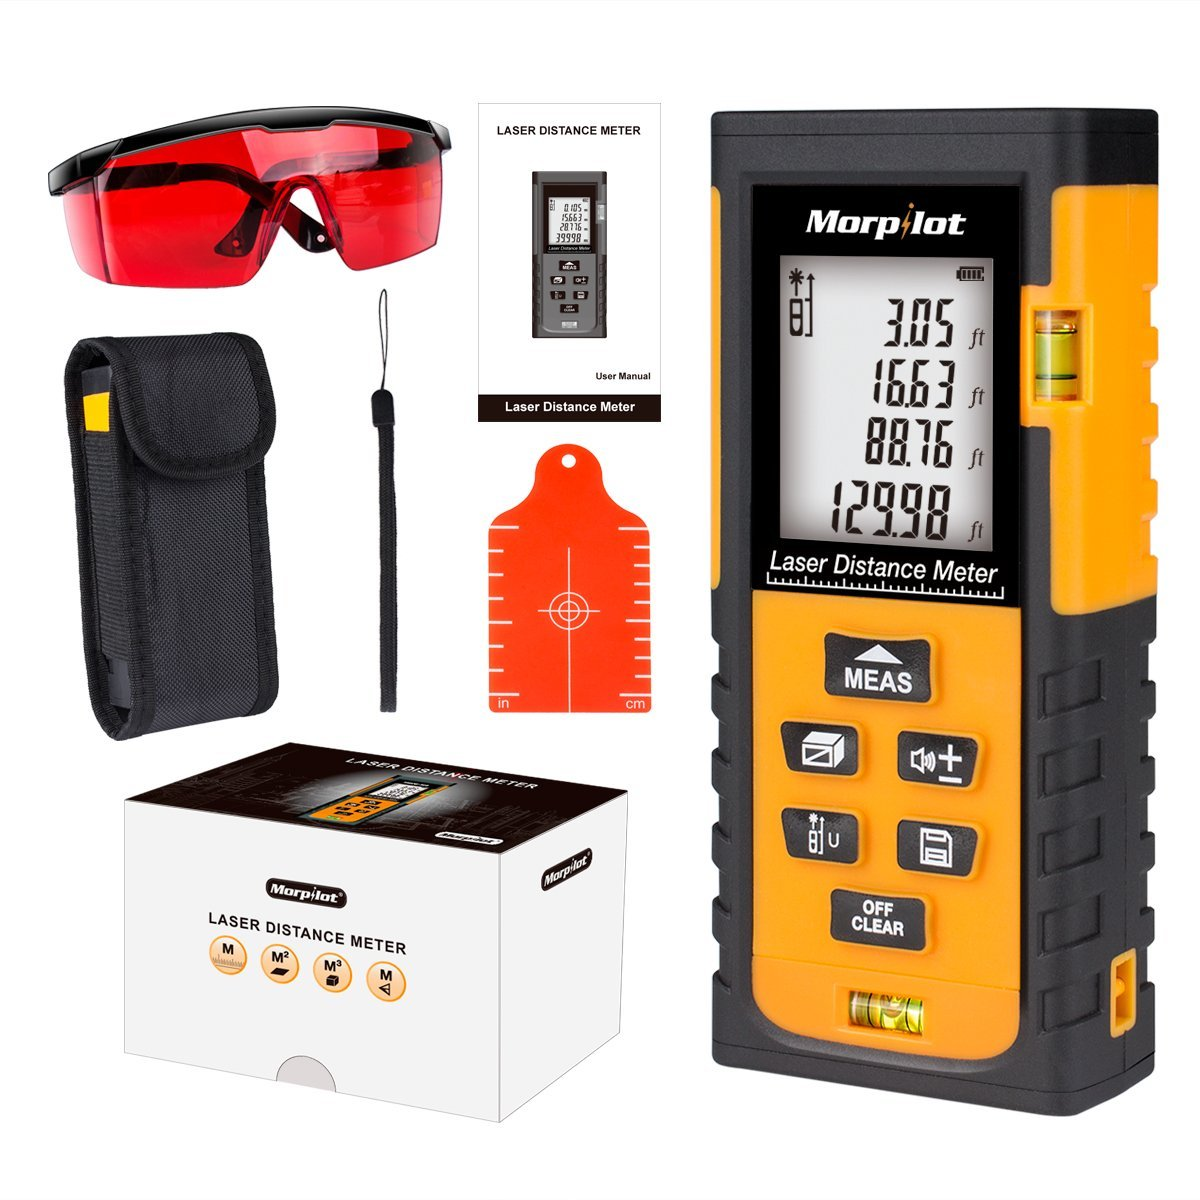 262ft Laser Distance Meter - Morpilot Laser Tape Measure with Target Plate & Enhancing Glasses, Laser Measuring Device with Pythagorean Mode, Measure Distance, Area, Volume Calculation